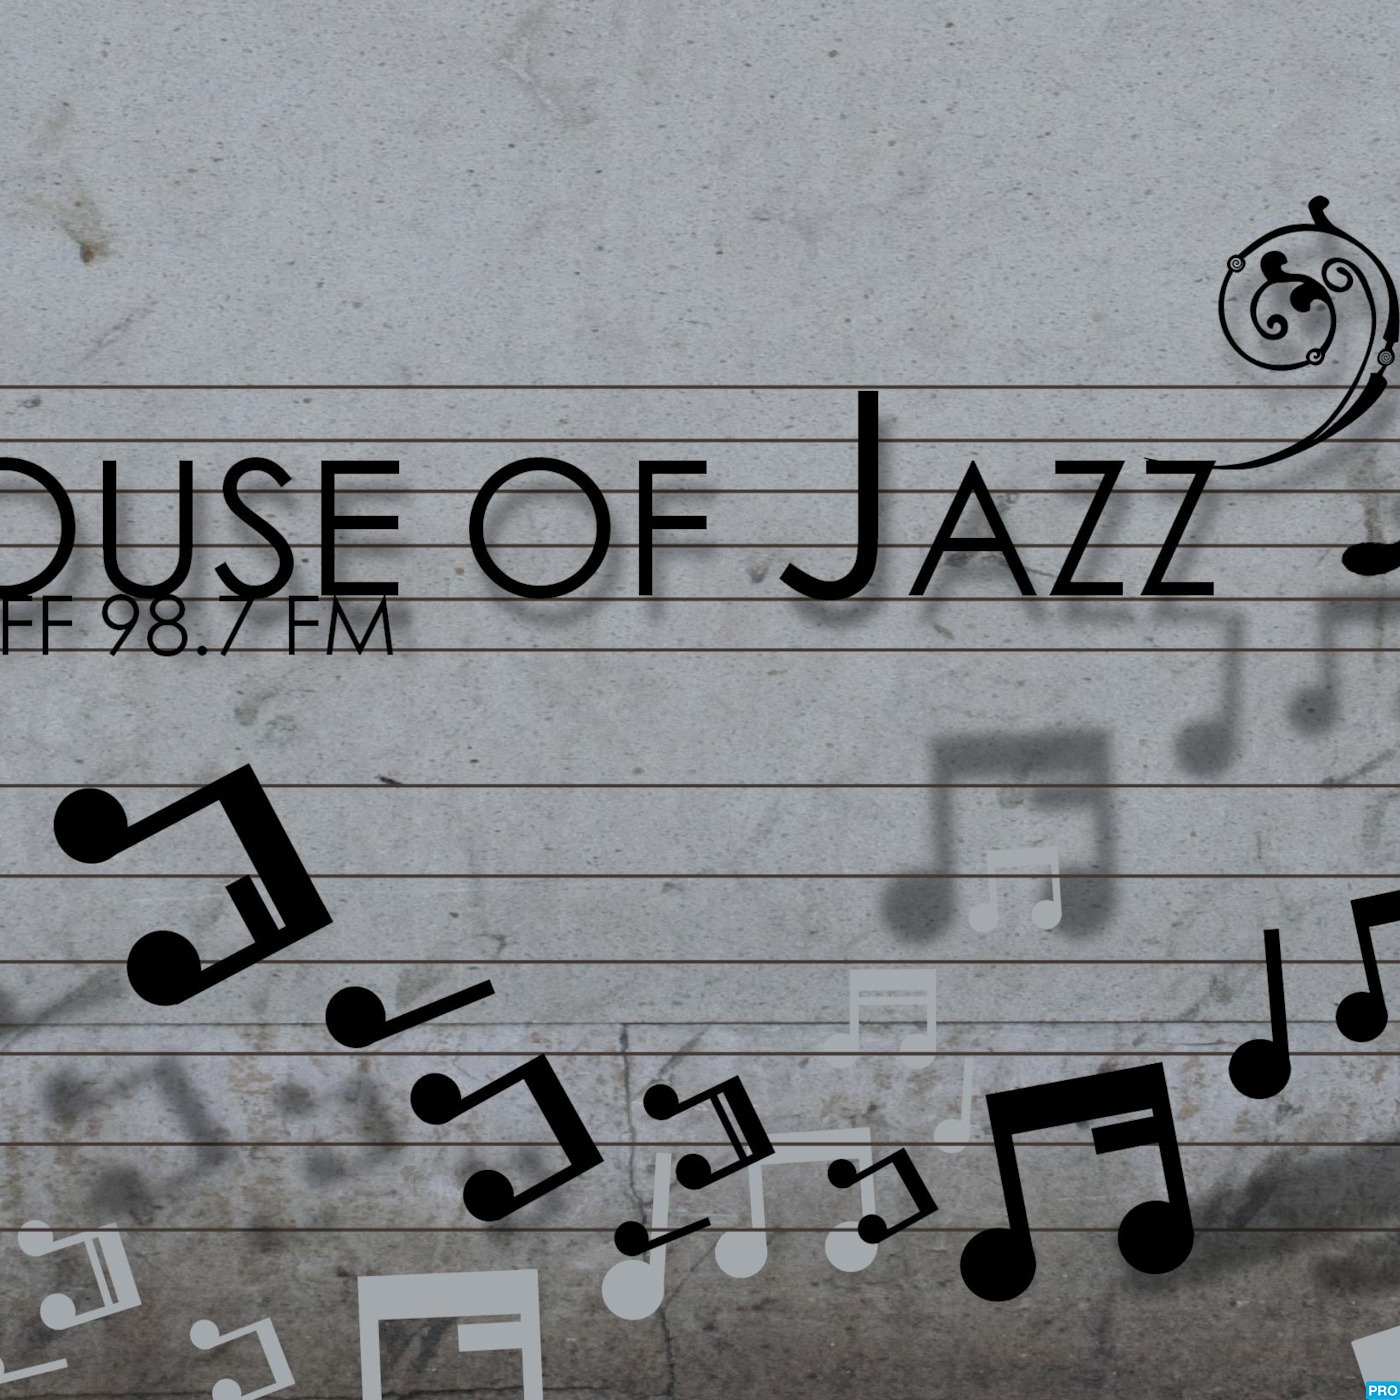 House of jazz